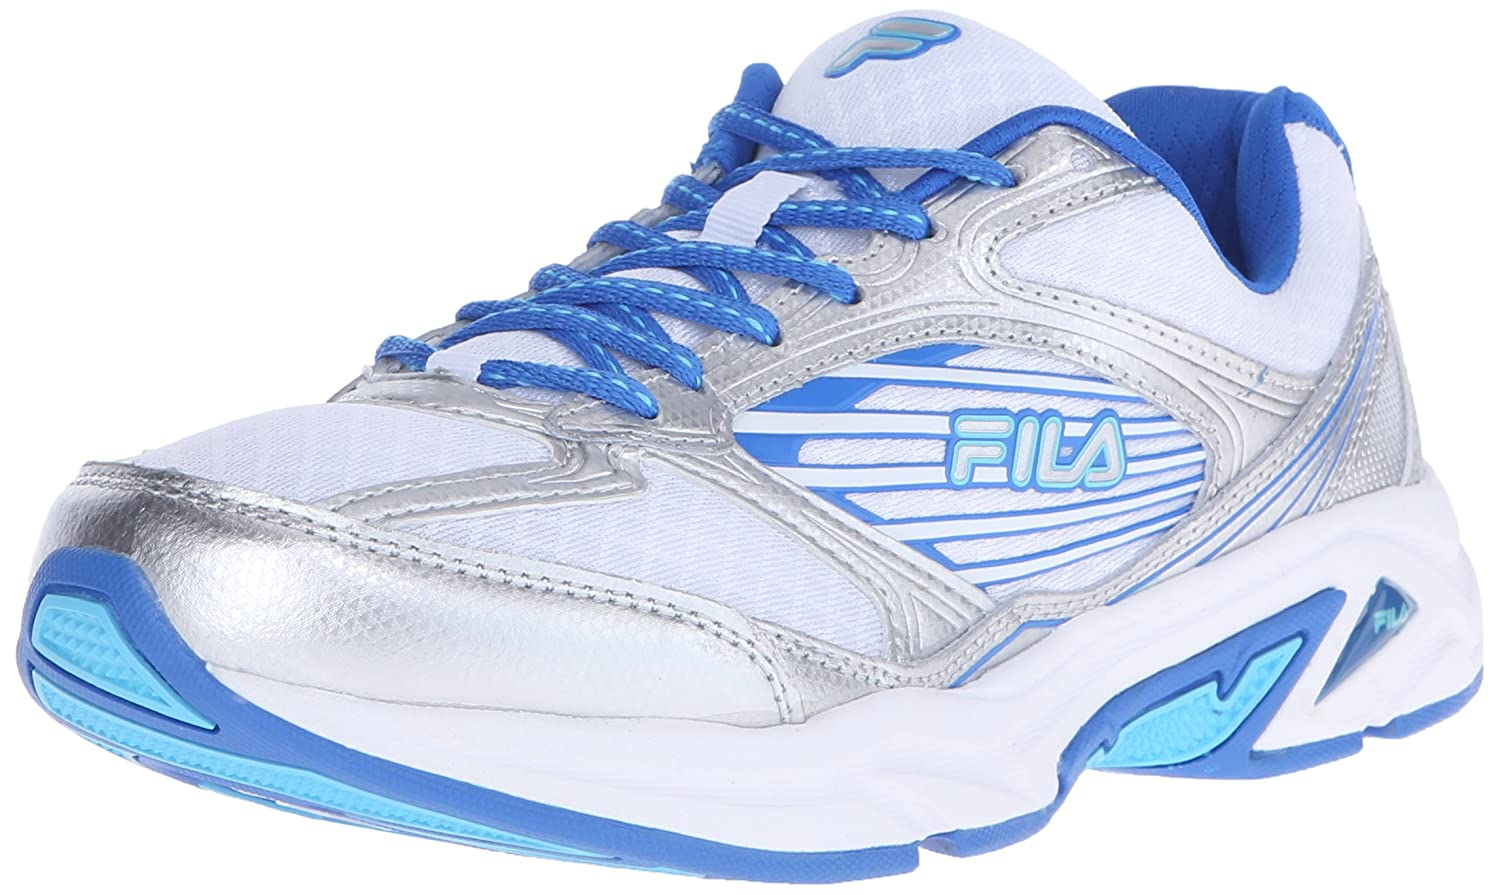 Fila Women's Inspell 3 Running Shoe B019Z0UYI8 7.5 B(M) US|White/Electric Blue